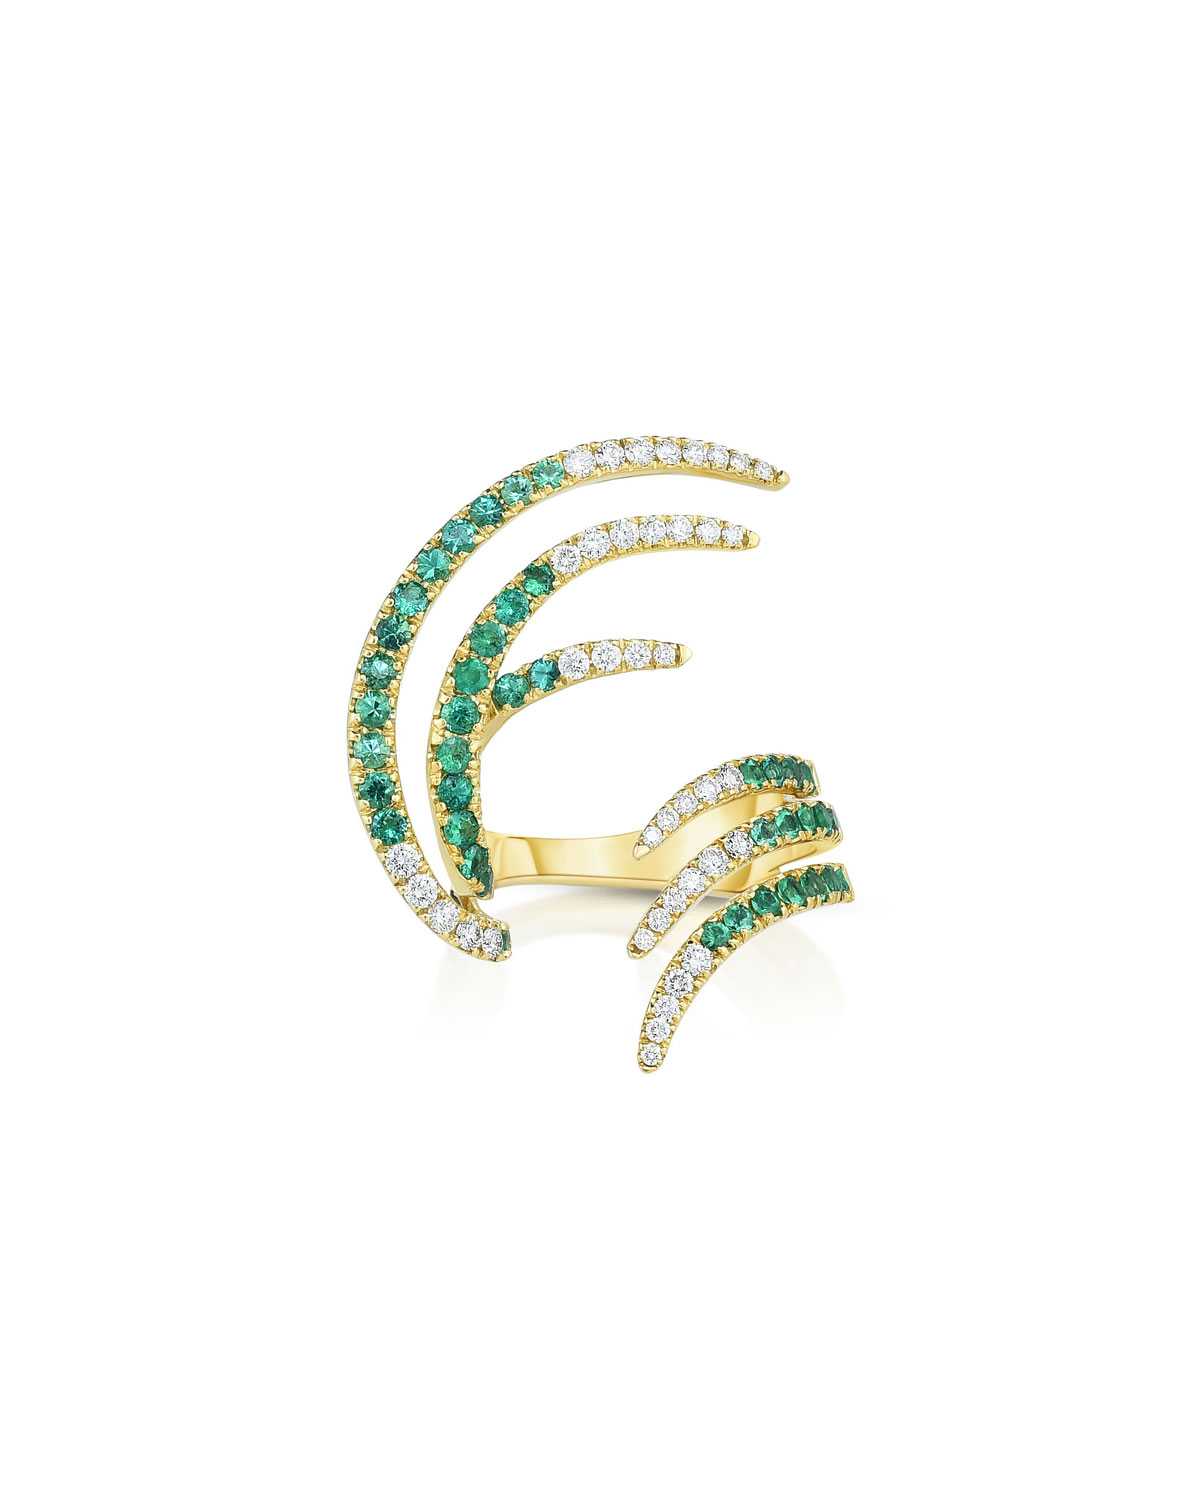 18K Emerald and Diamond Open Wing Ring